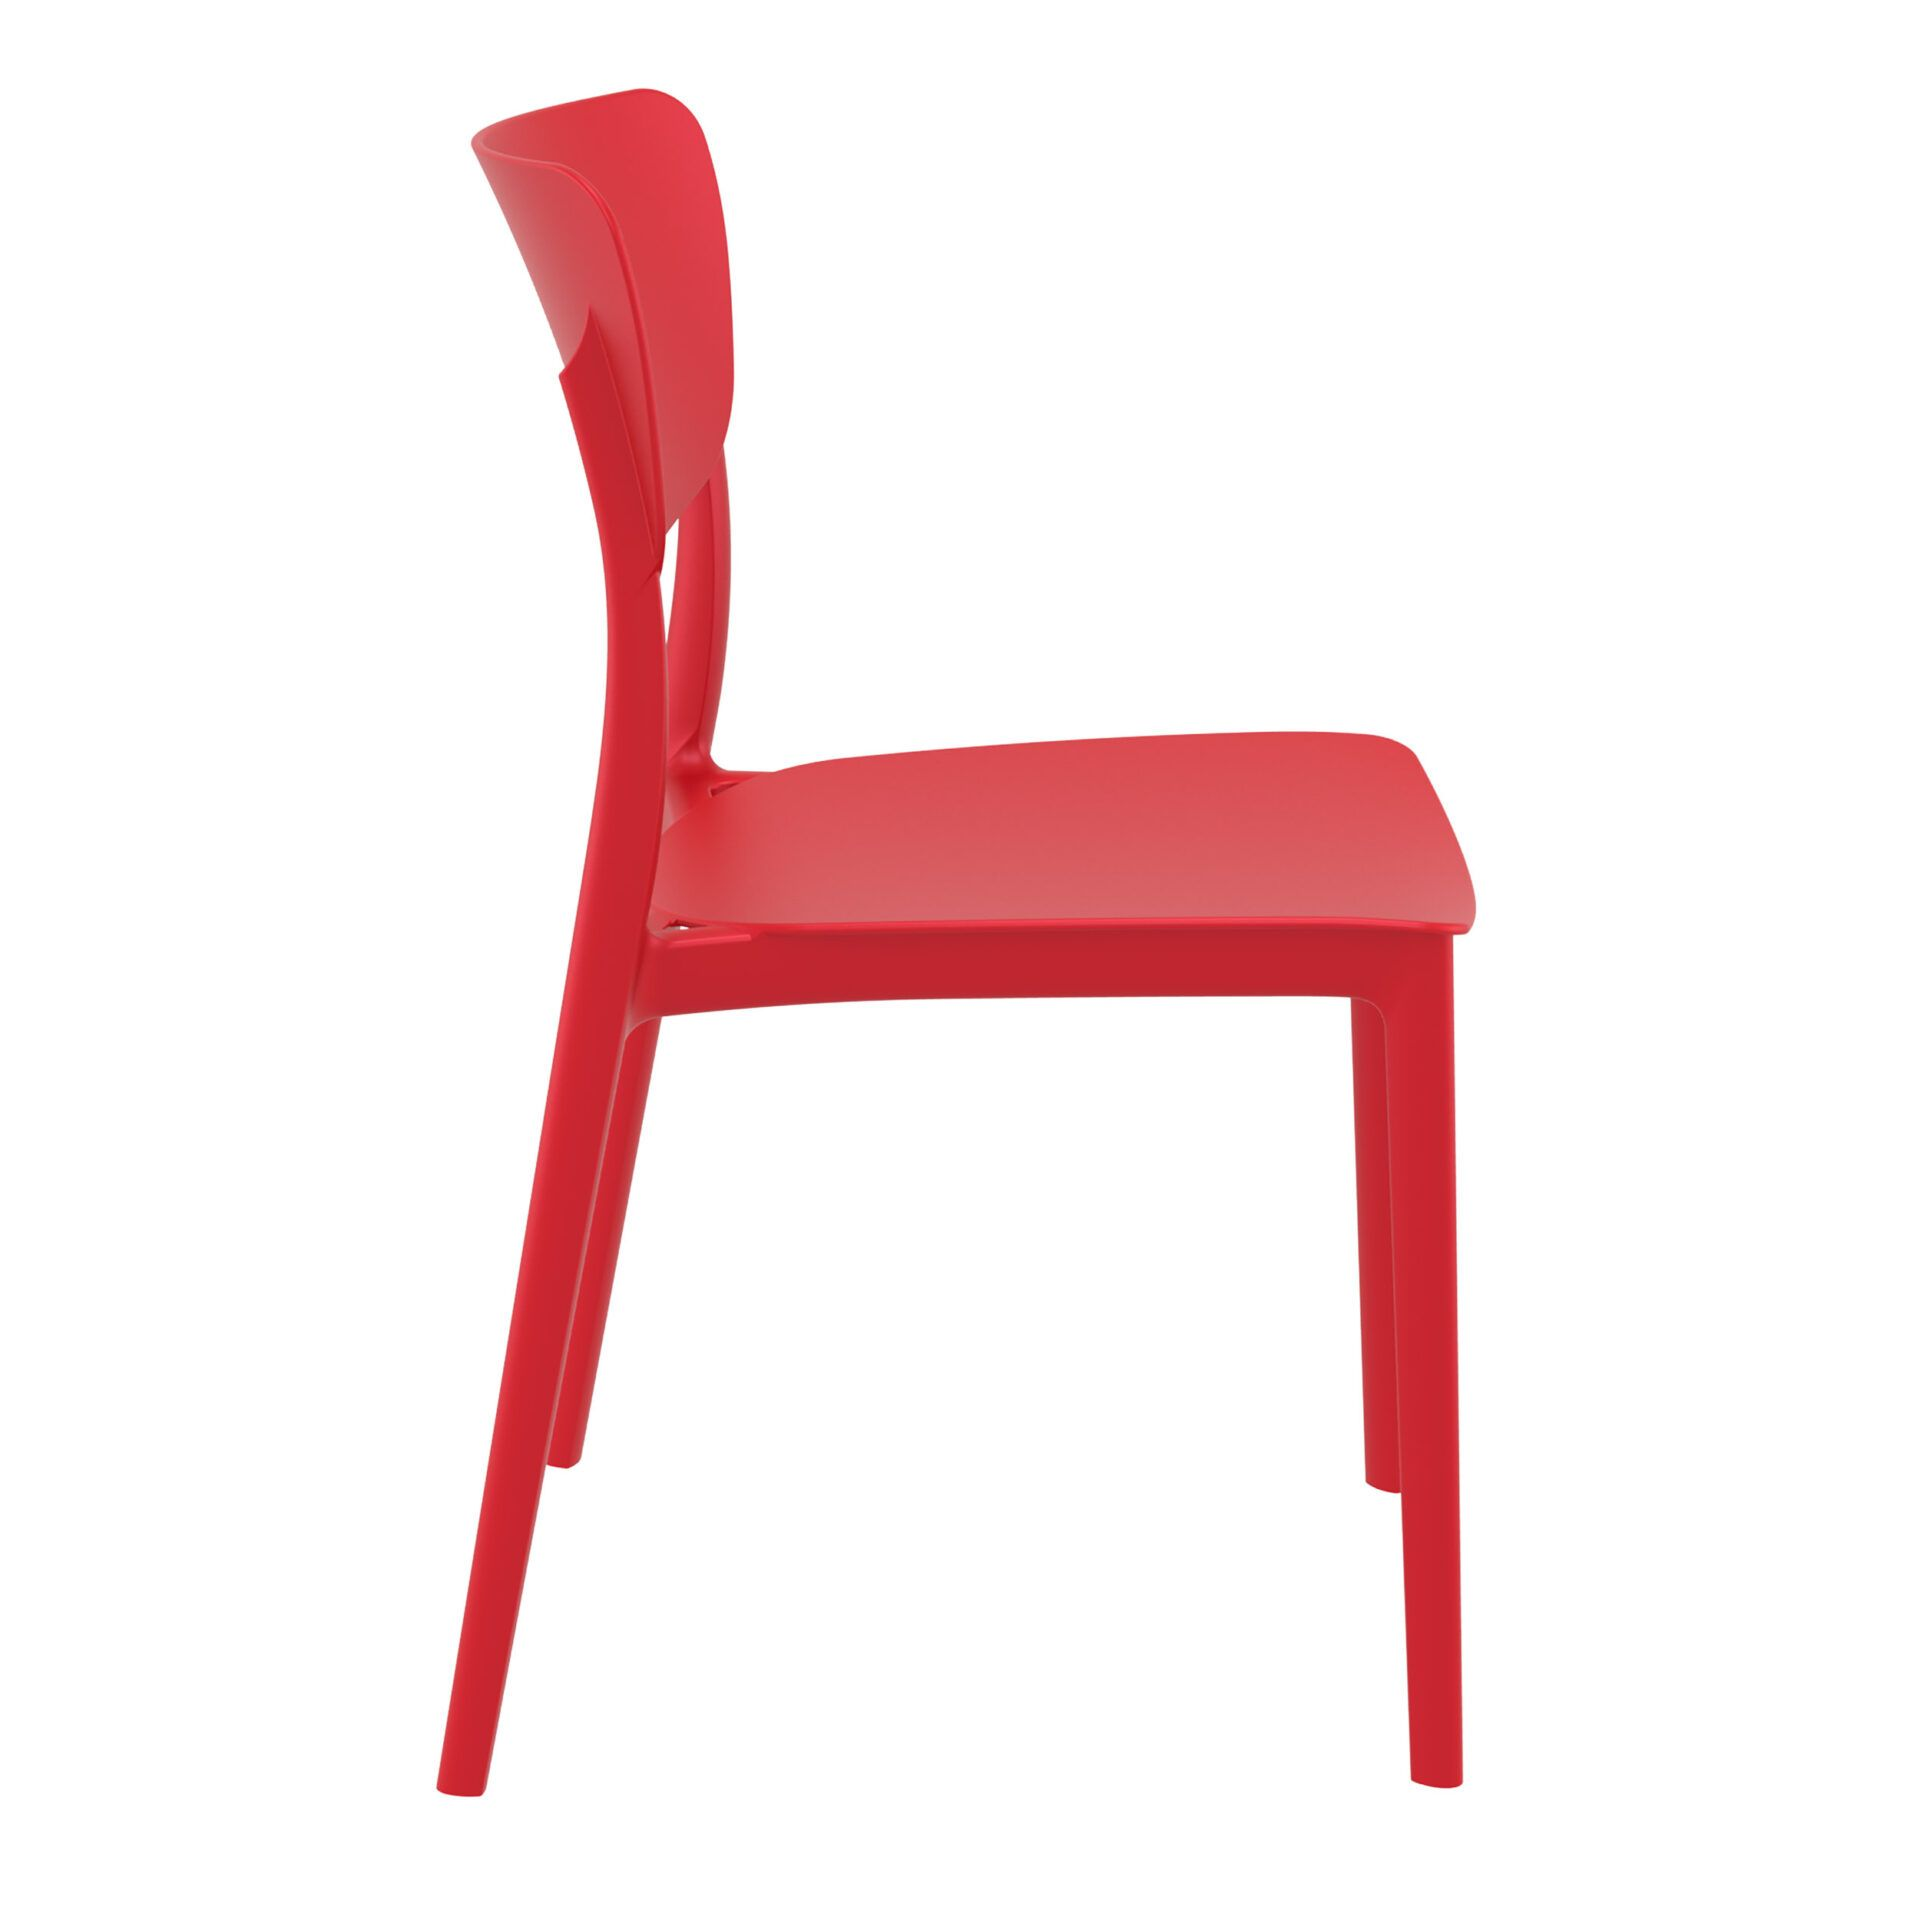 polypropylene outdoor dining monna chair red side